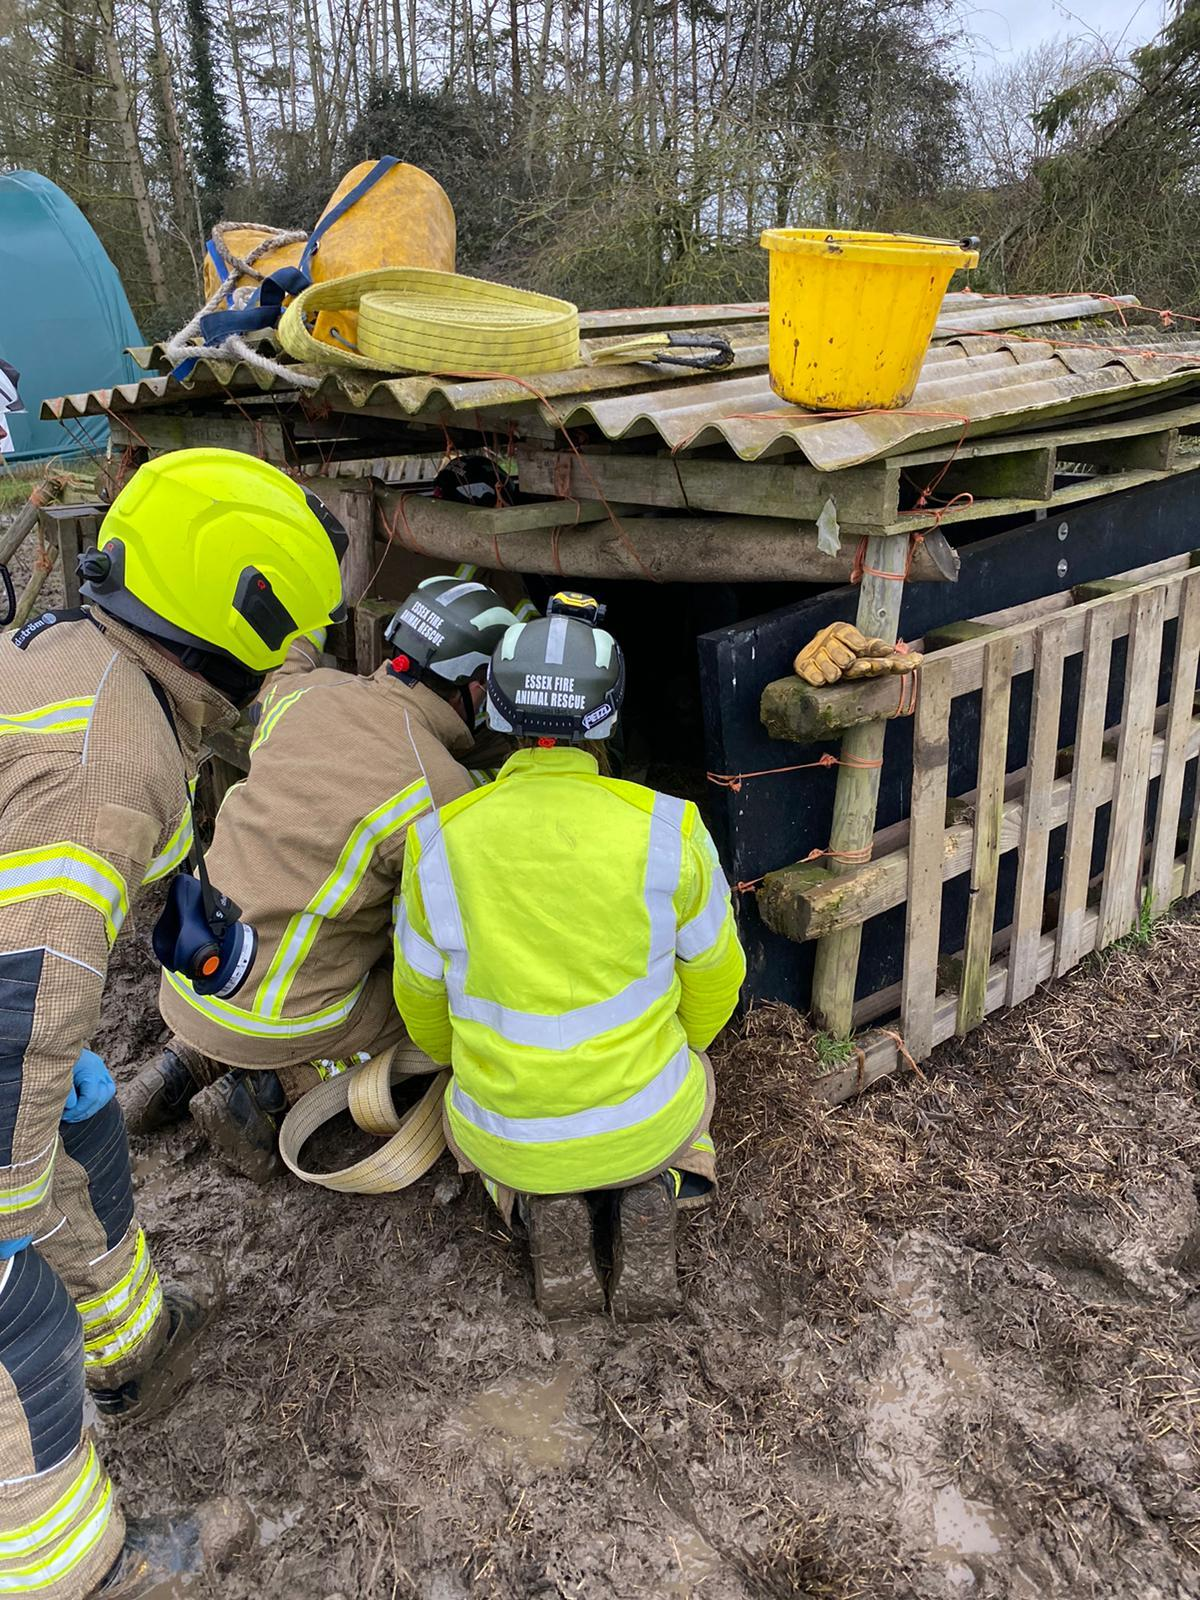 Dolly went for a lie down in her sty and got stuck in the mud. (Essex County Fire and Rescue Service/ PA)